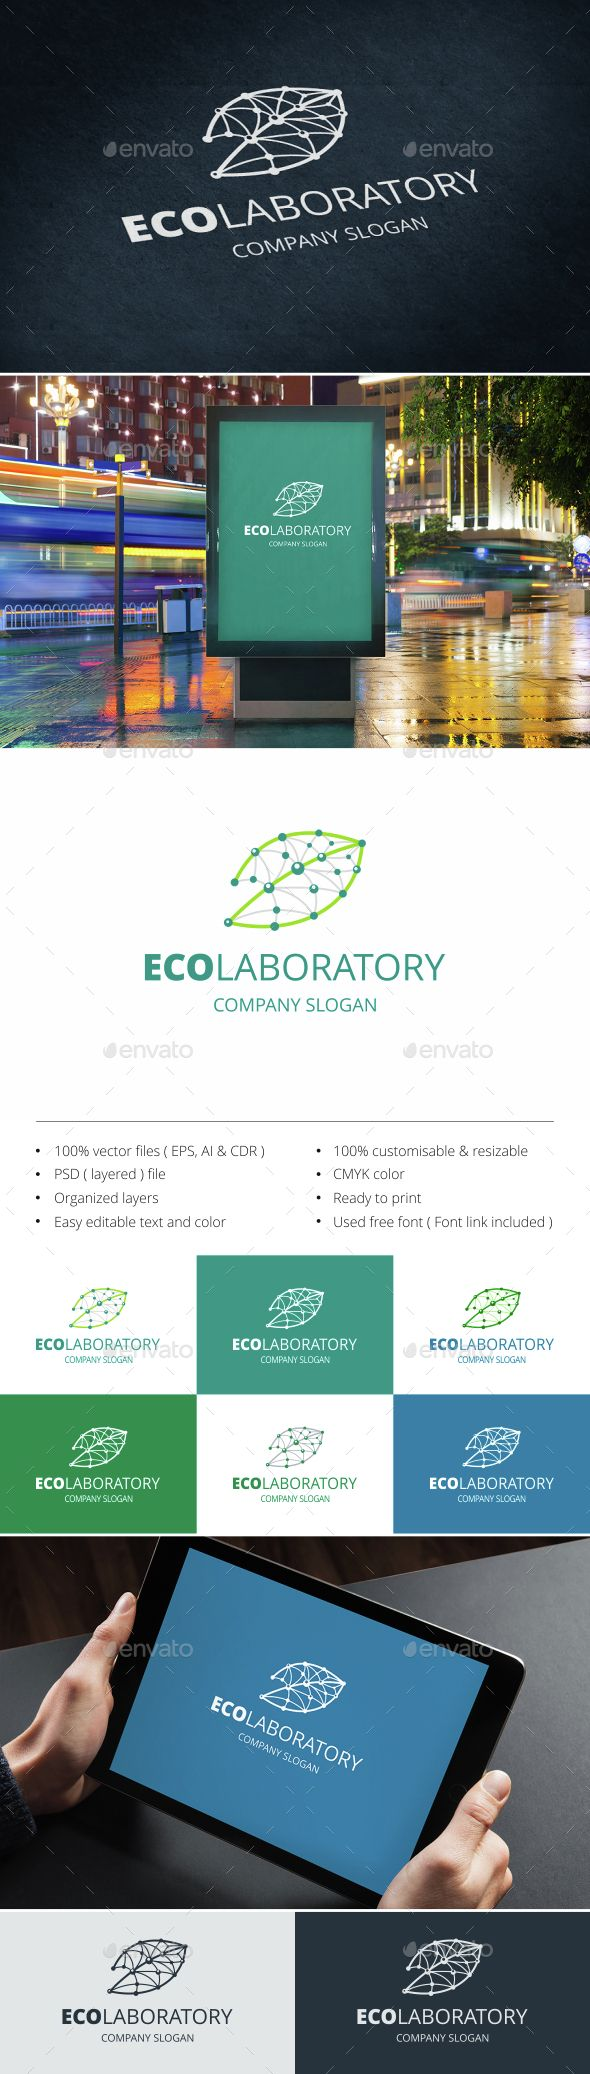 Eco Laboratory Logo Template PSD, Vector EPS, AI Illustrator, CorelDRAW CDR #logotype Download here: http://graphicriver.net/item/eco-laboratory-logo/15198859?ref=ksioks